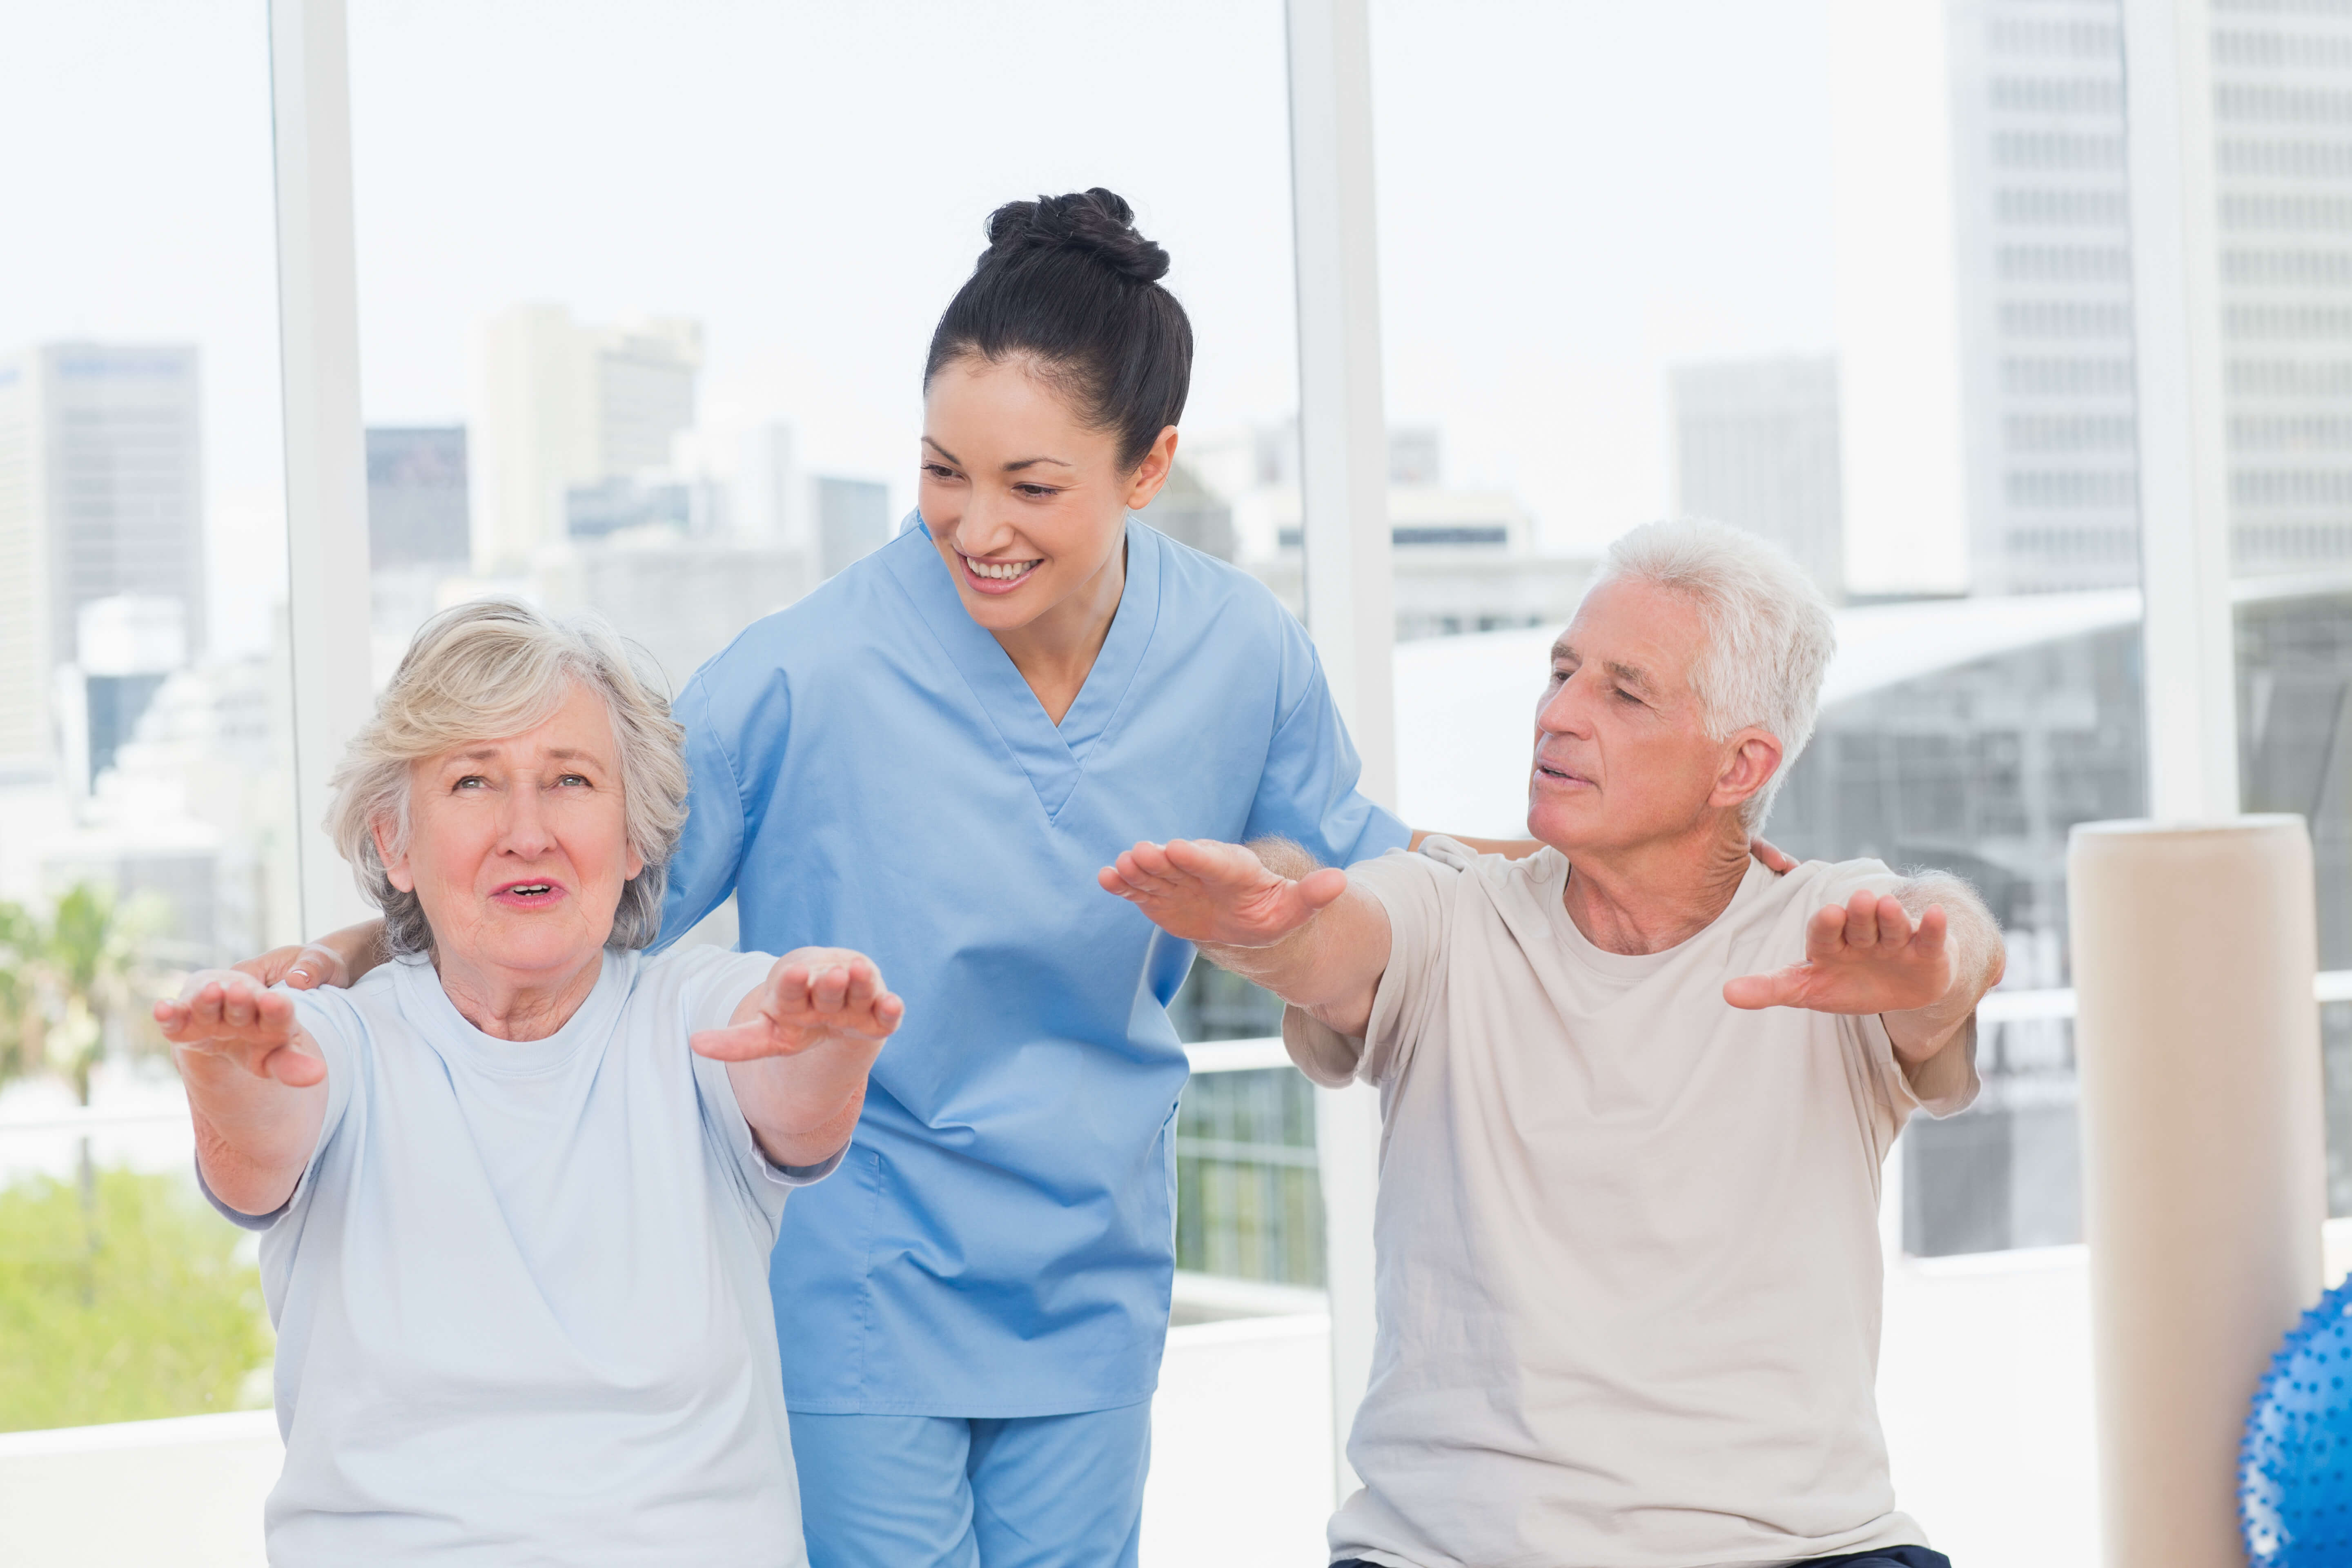 Benefits of Pre-surgical Physical Therapy